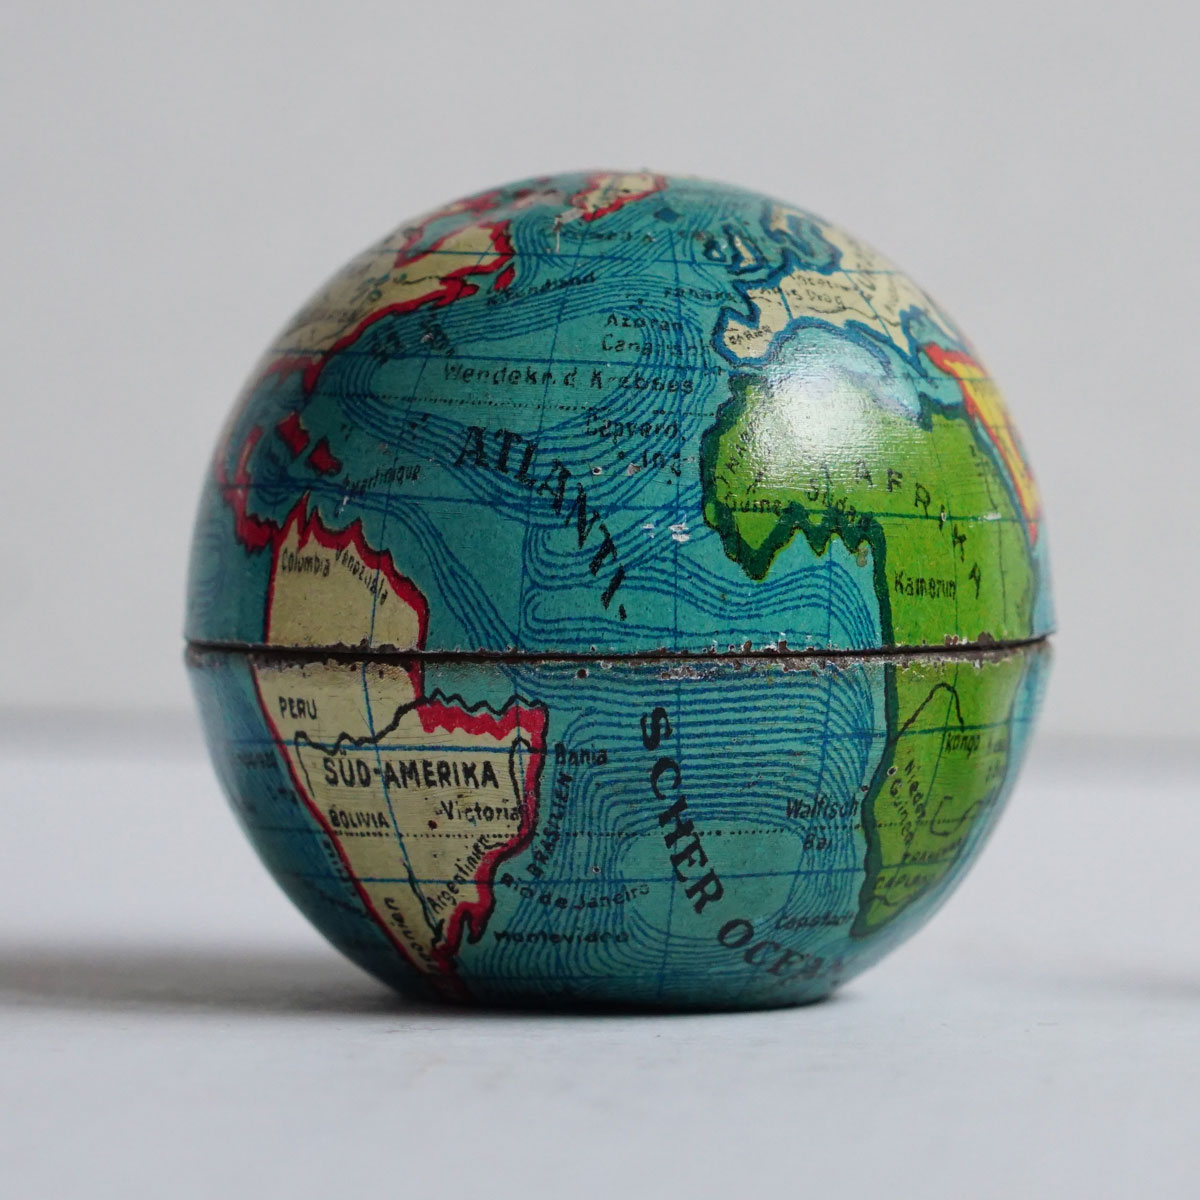 Tiny pencil sharpenner tin globe from late 19th century